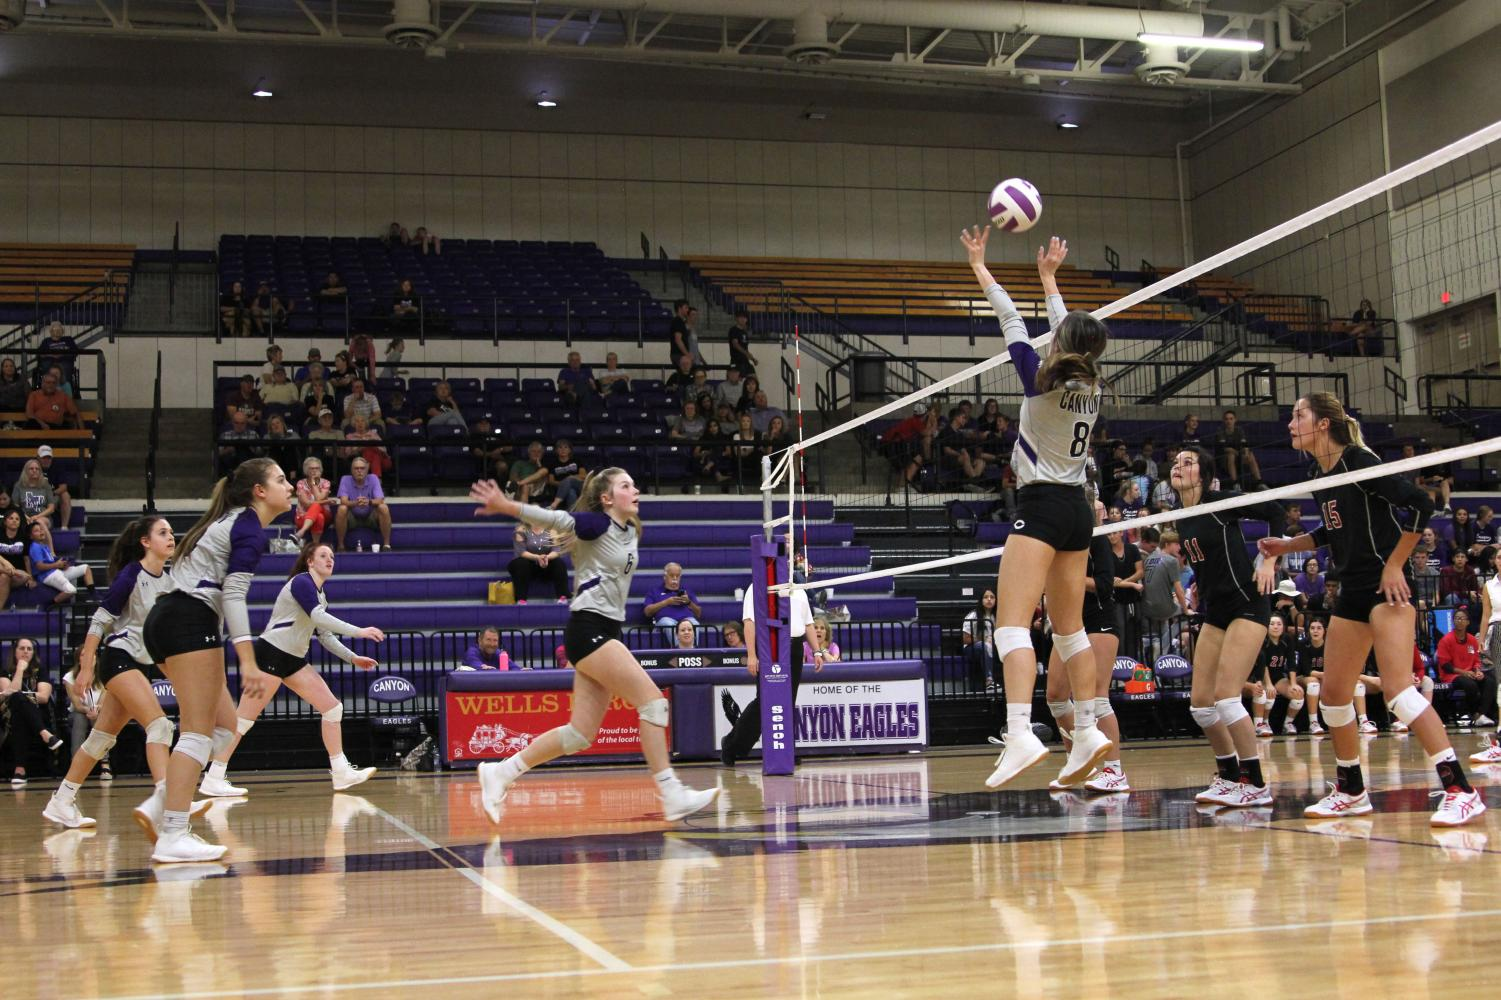 Senior Keelie Mitchell sets the ball for junior Carlee Henderson to hit during the Sept. 24 game against Borger.